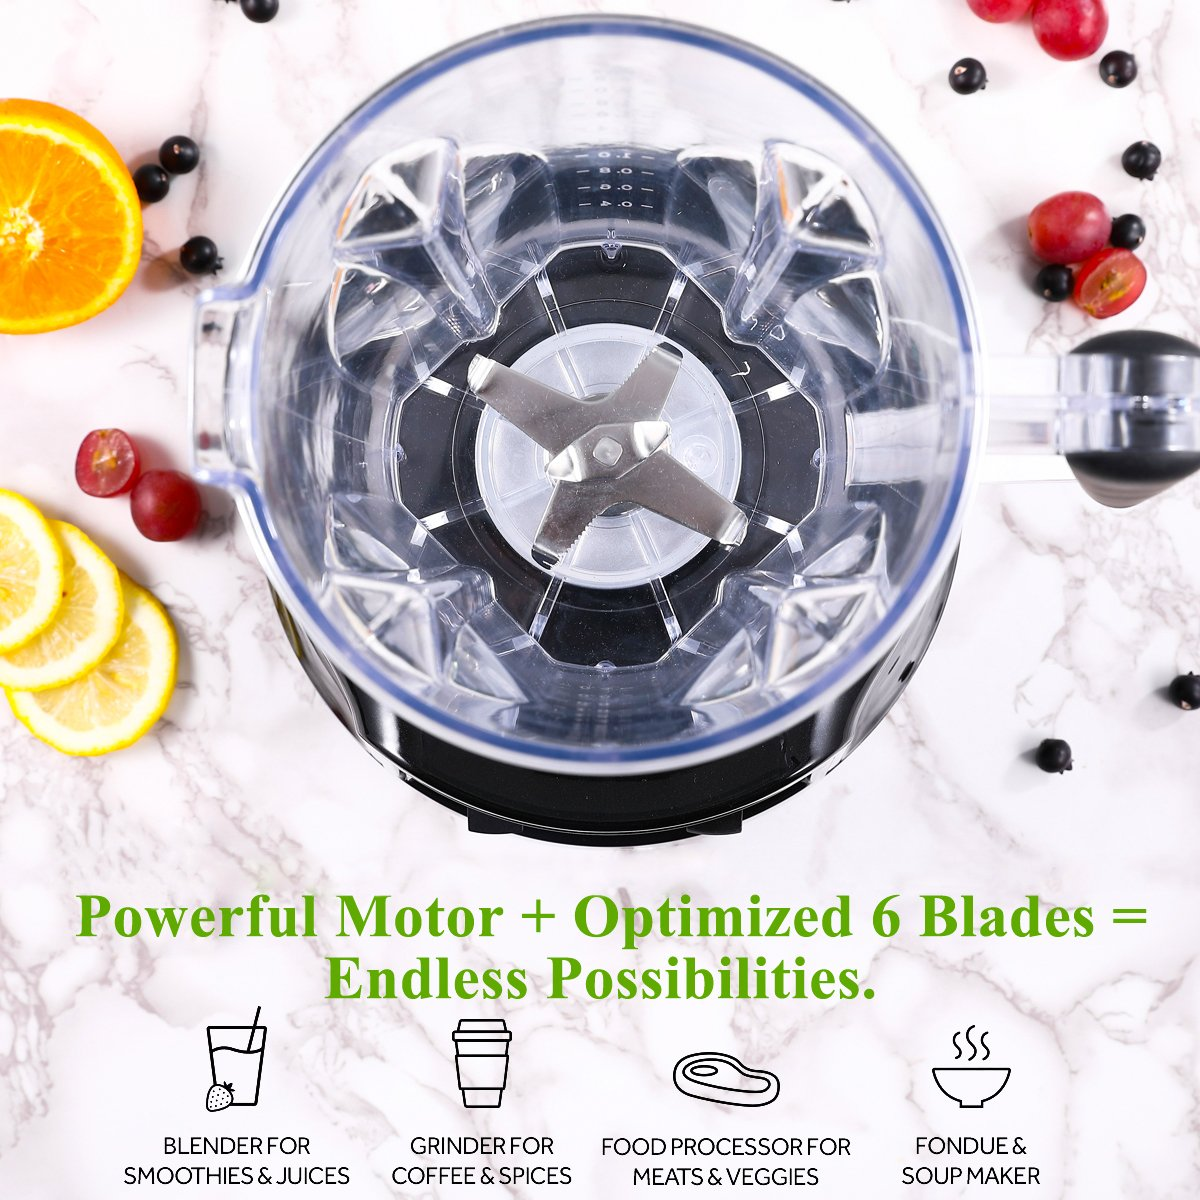 Professional Smoothie Blender Aimores | 750z High Speed Juicer, Ice Cream Maker | Optimized 6 Sharp Blades | Auto Clean & Simple Control | w/ Recipe & Tamper | ETL & FDA Certified (Silver) by ISUN (Image #3)